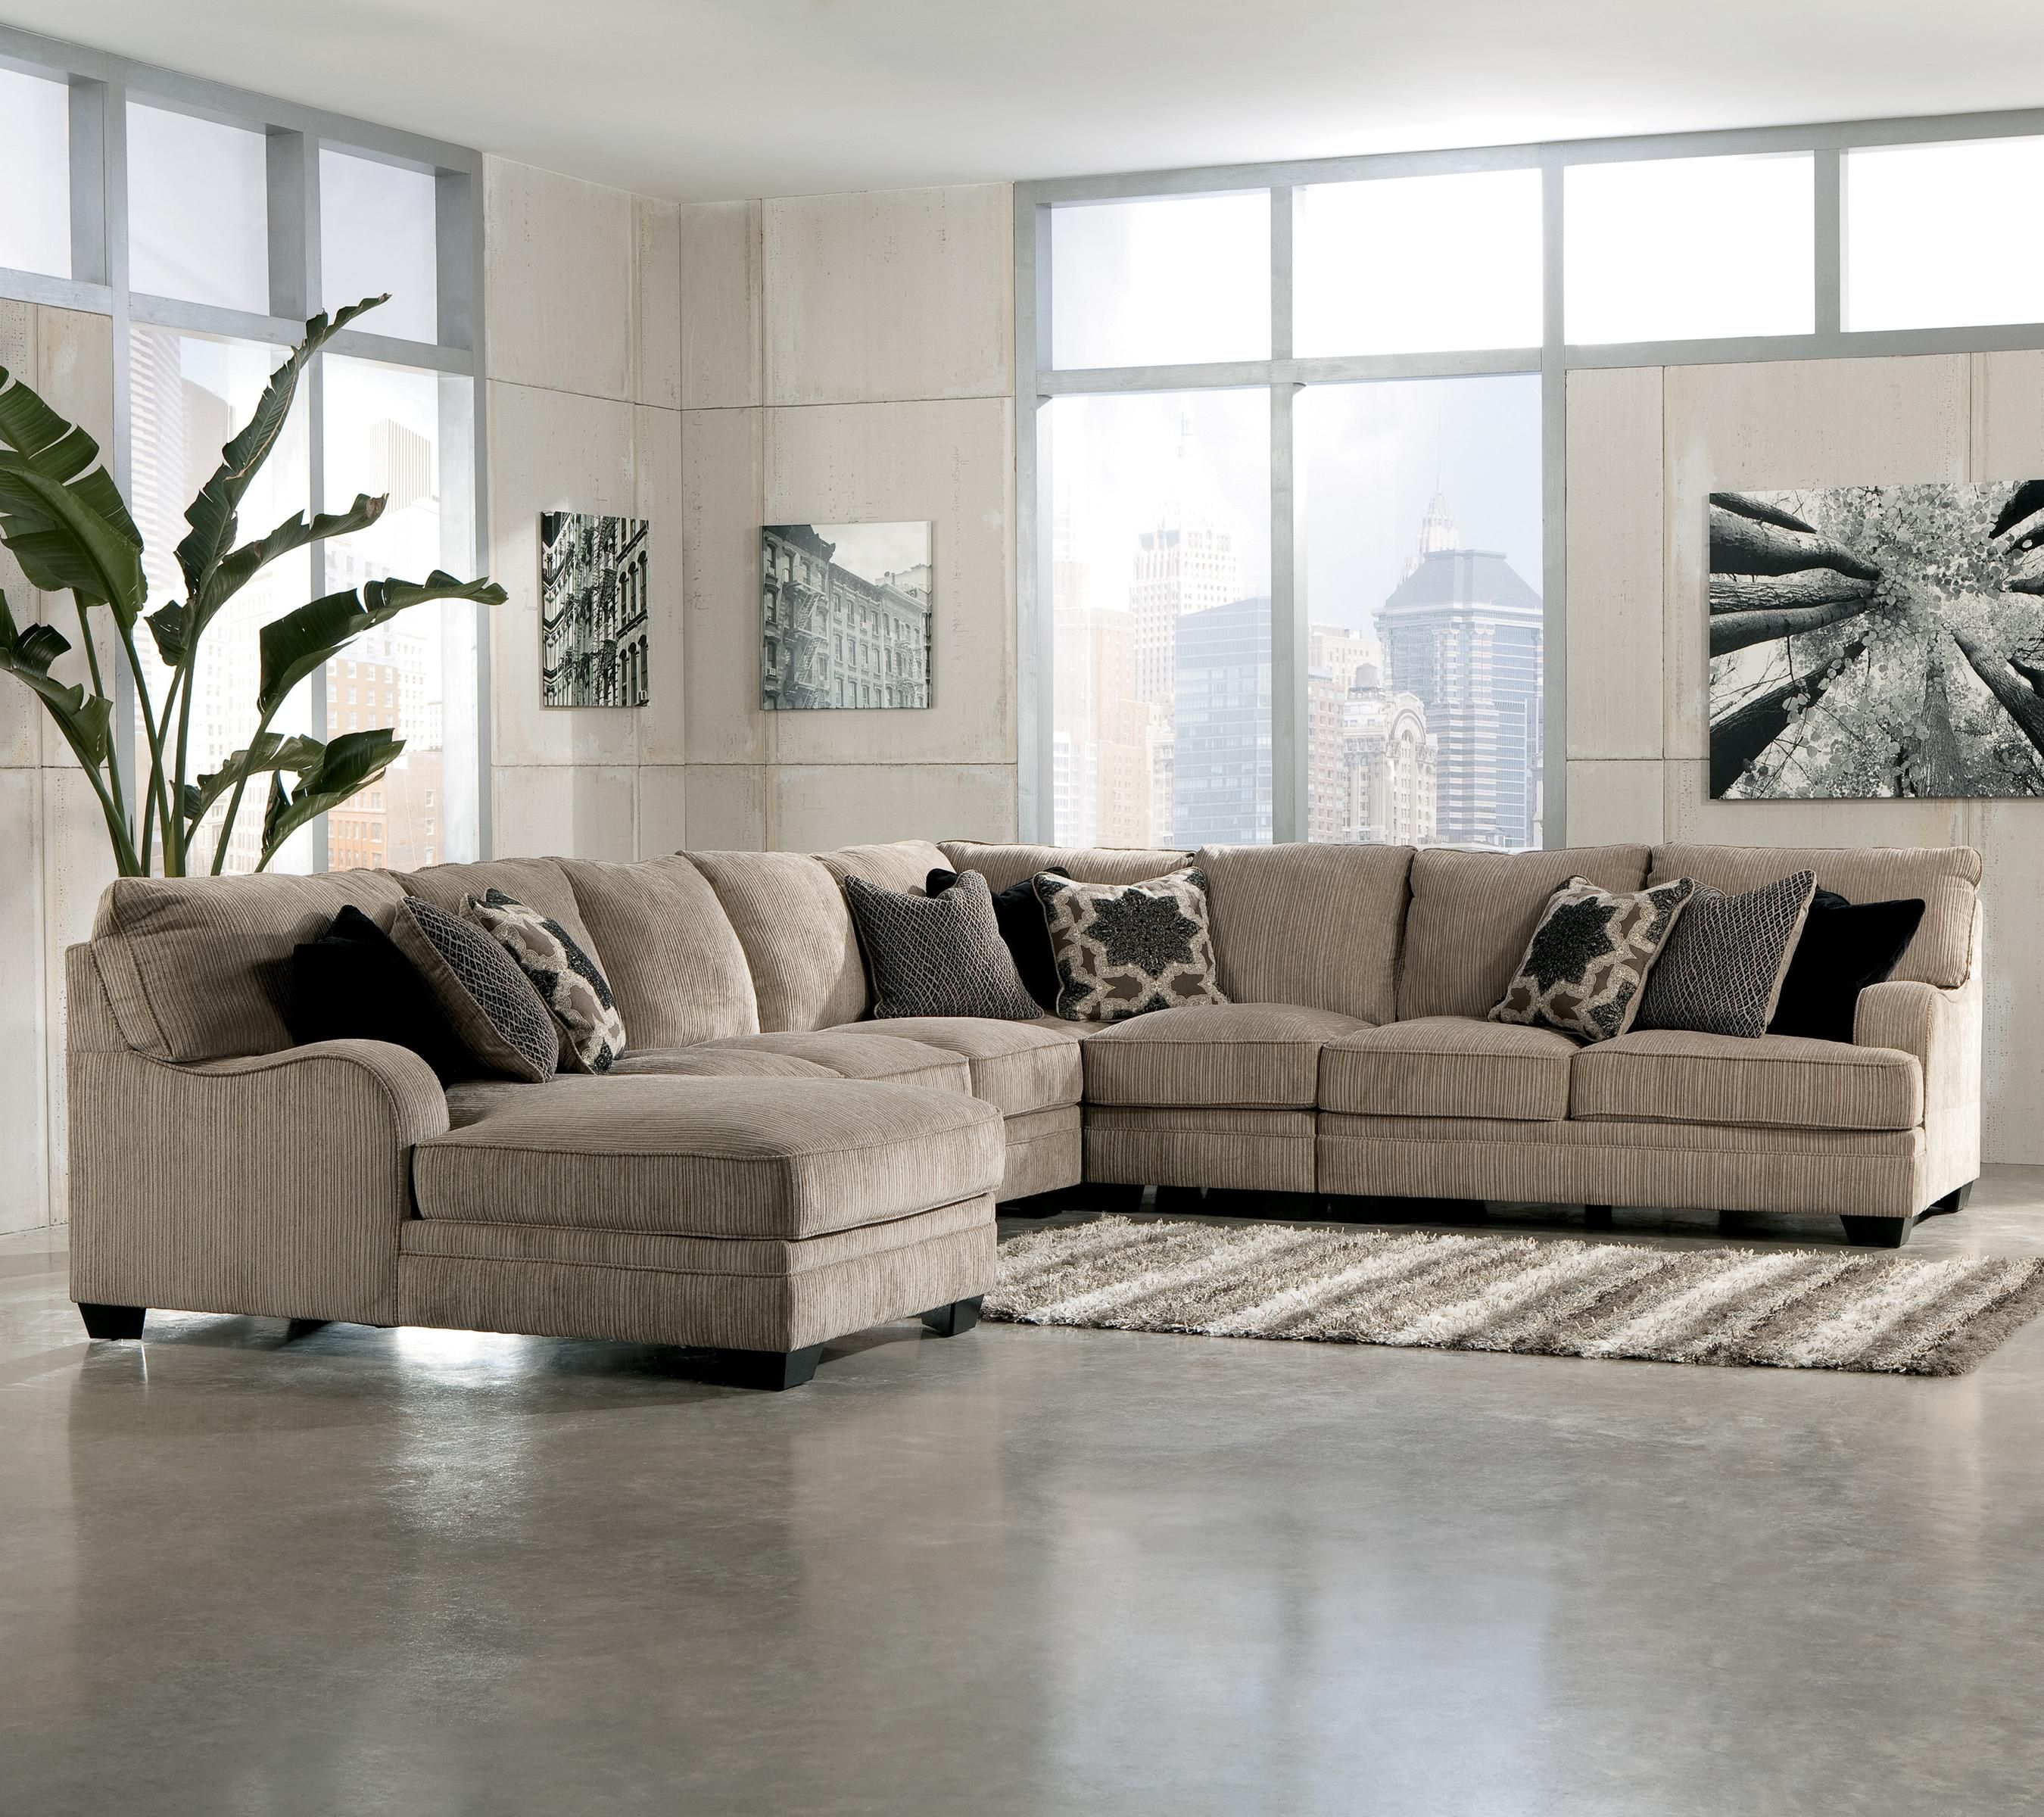 Signature Design by Ashley Katisha - Platinum Sectional Sofa with Left Chaise - Miskelly Furniture - Sofa Sectional Jackson Mississippi : sectional couch ashley furniture - Sectionals, Sofas & Couches